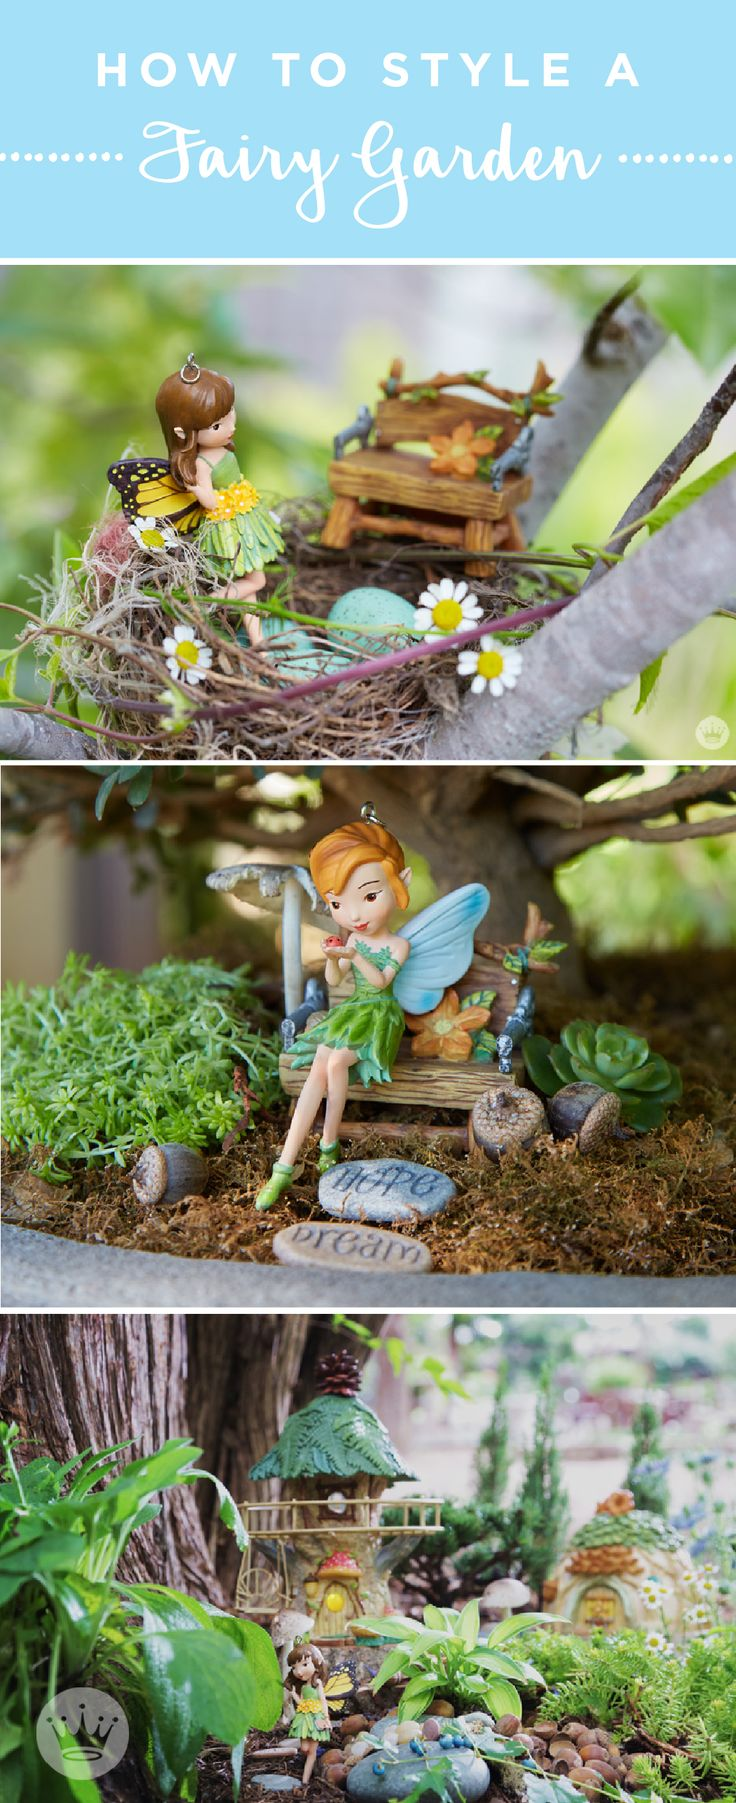 Welcome in summer by decorating your yard like a modern fairy garden. Think.Make.Share, a blog from the Creative Studios at Hallmark is sharing all the details from the magical workshop with plenty of fairy garden house ideas. It's a great project you and your kids can do together!